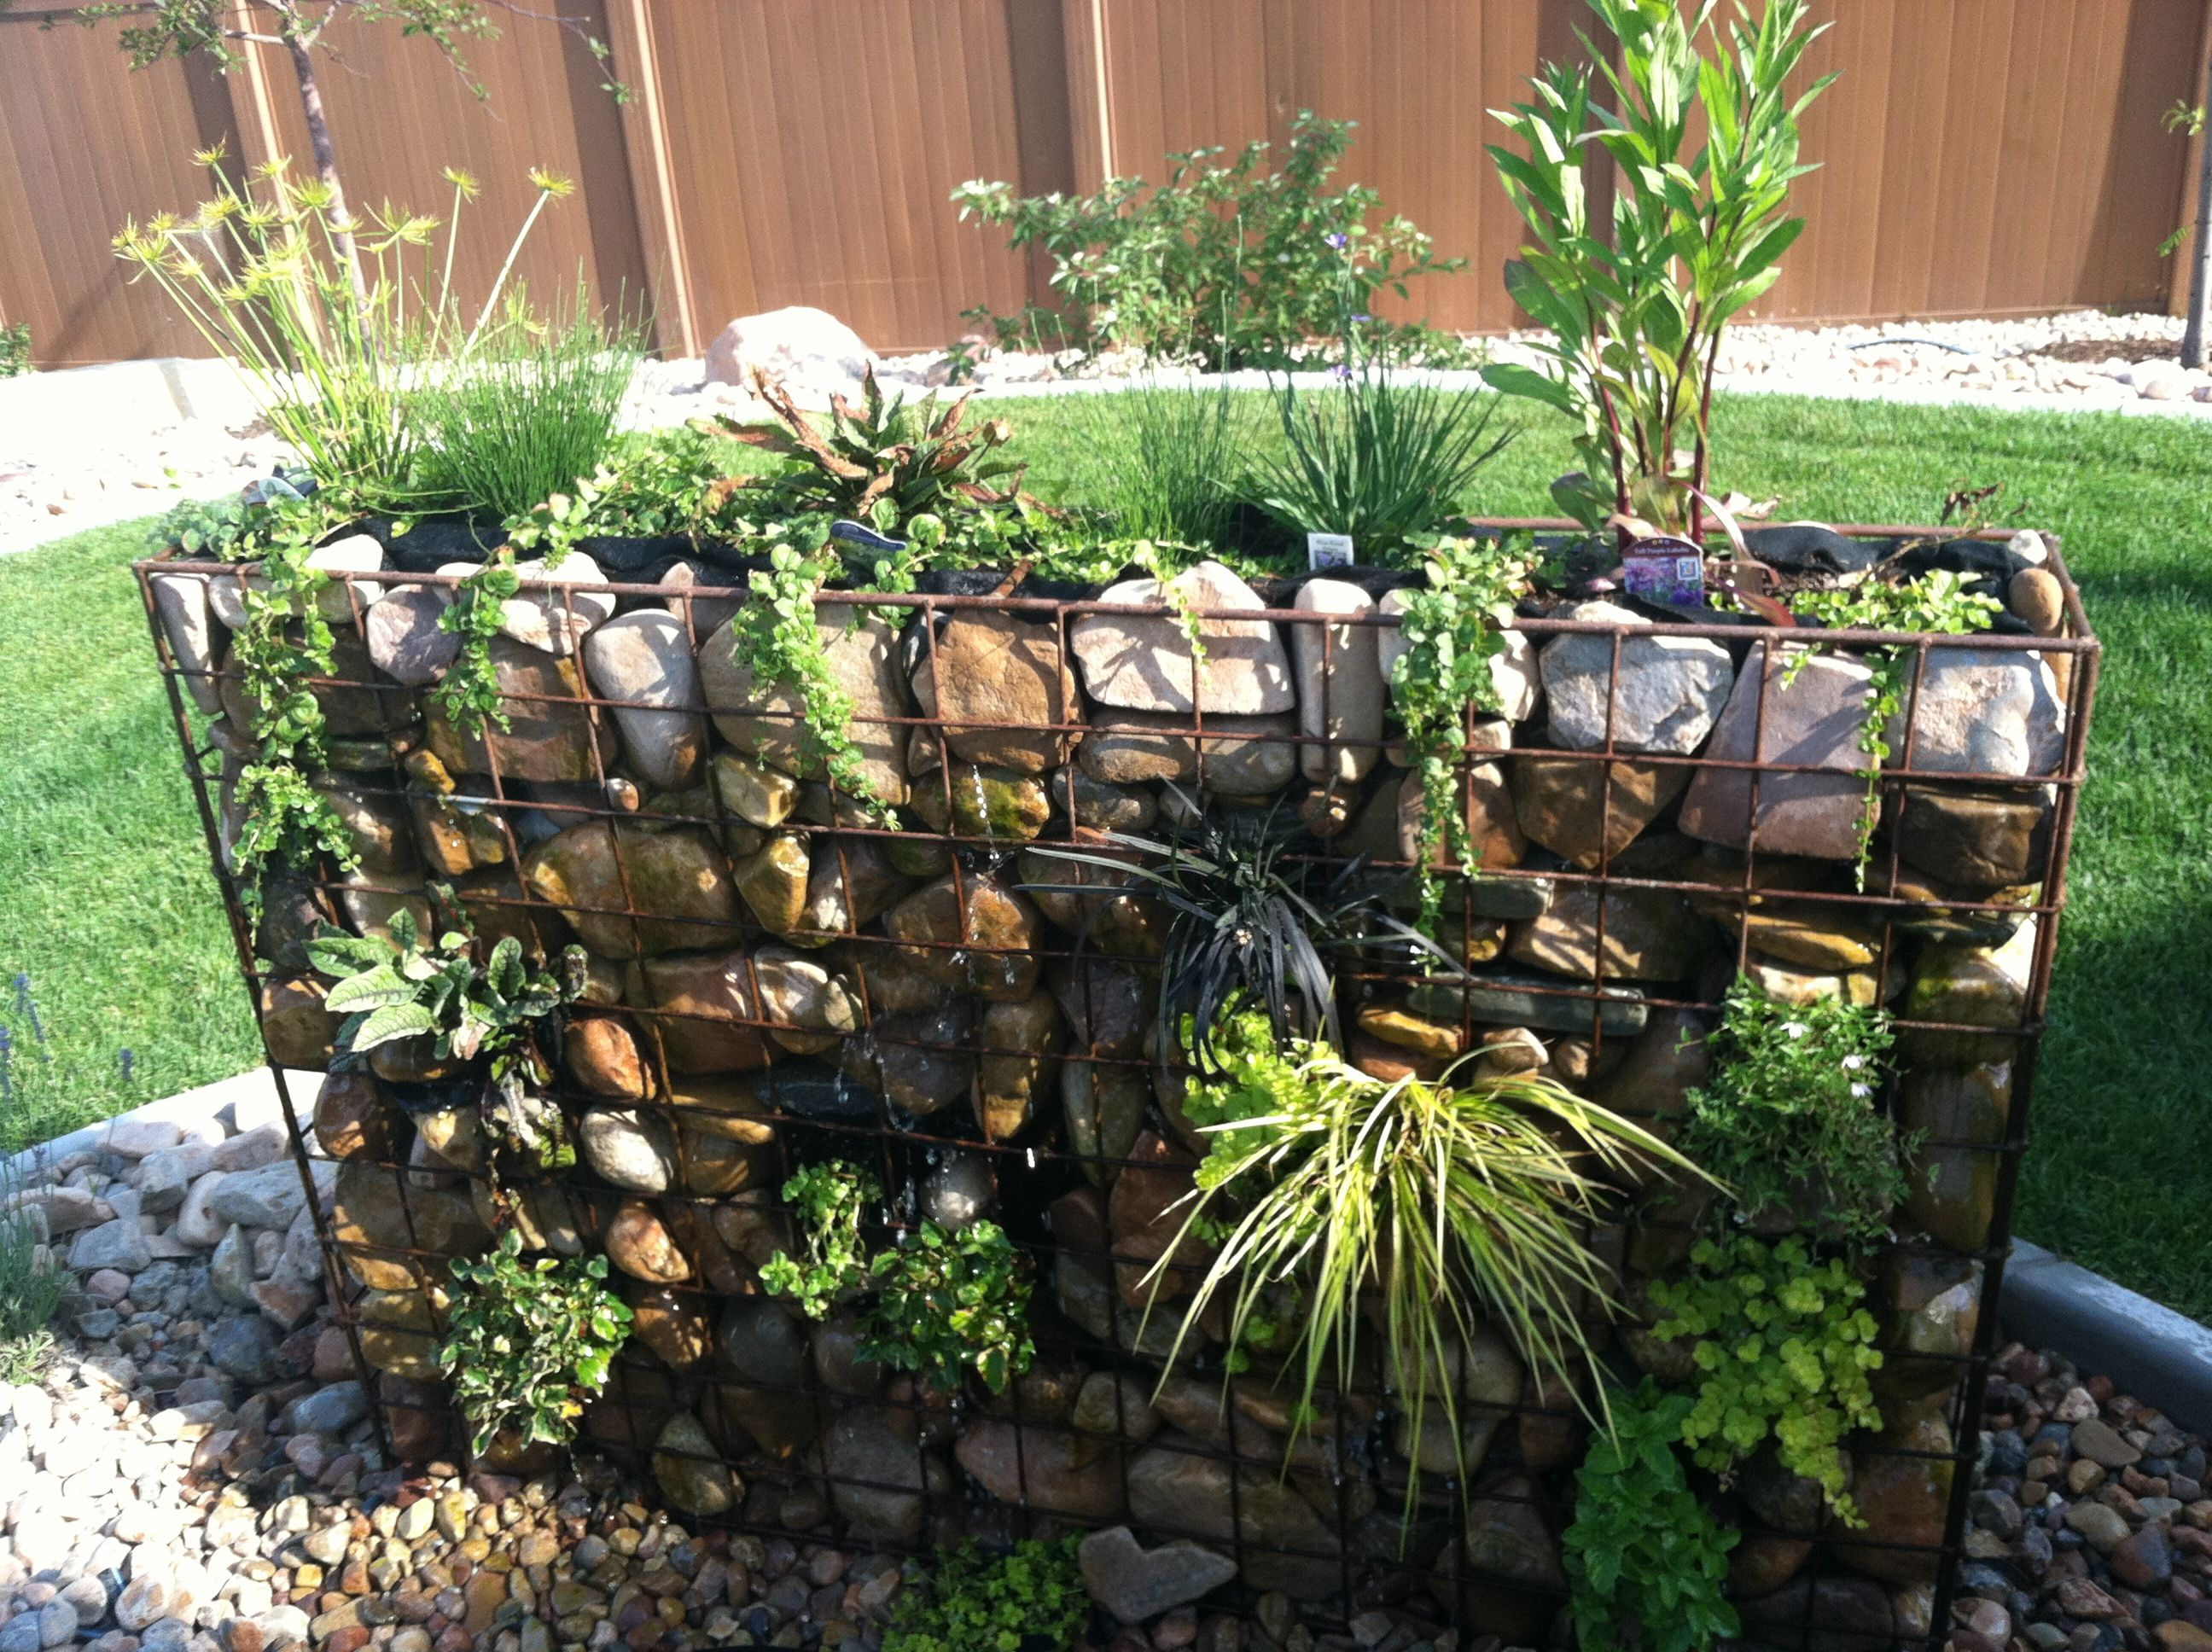 Gabion Wall Water and Plant Feature. i'm planning on building one of these in the shade, taller and narrower. it will have a small goldfish pool under it and a pump to send the water to the top to trickle down over the mosses and babies tears.